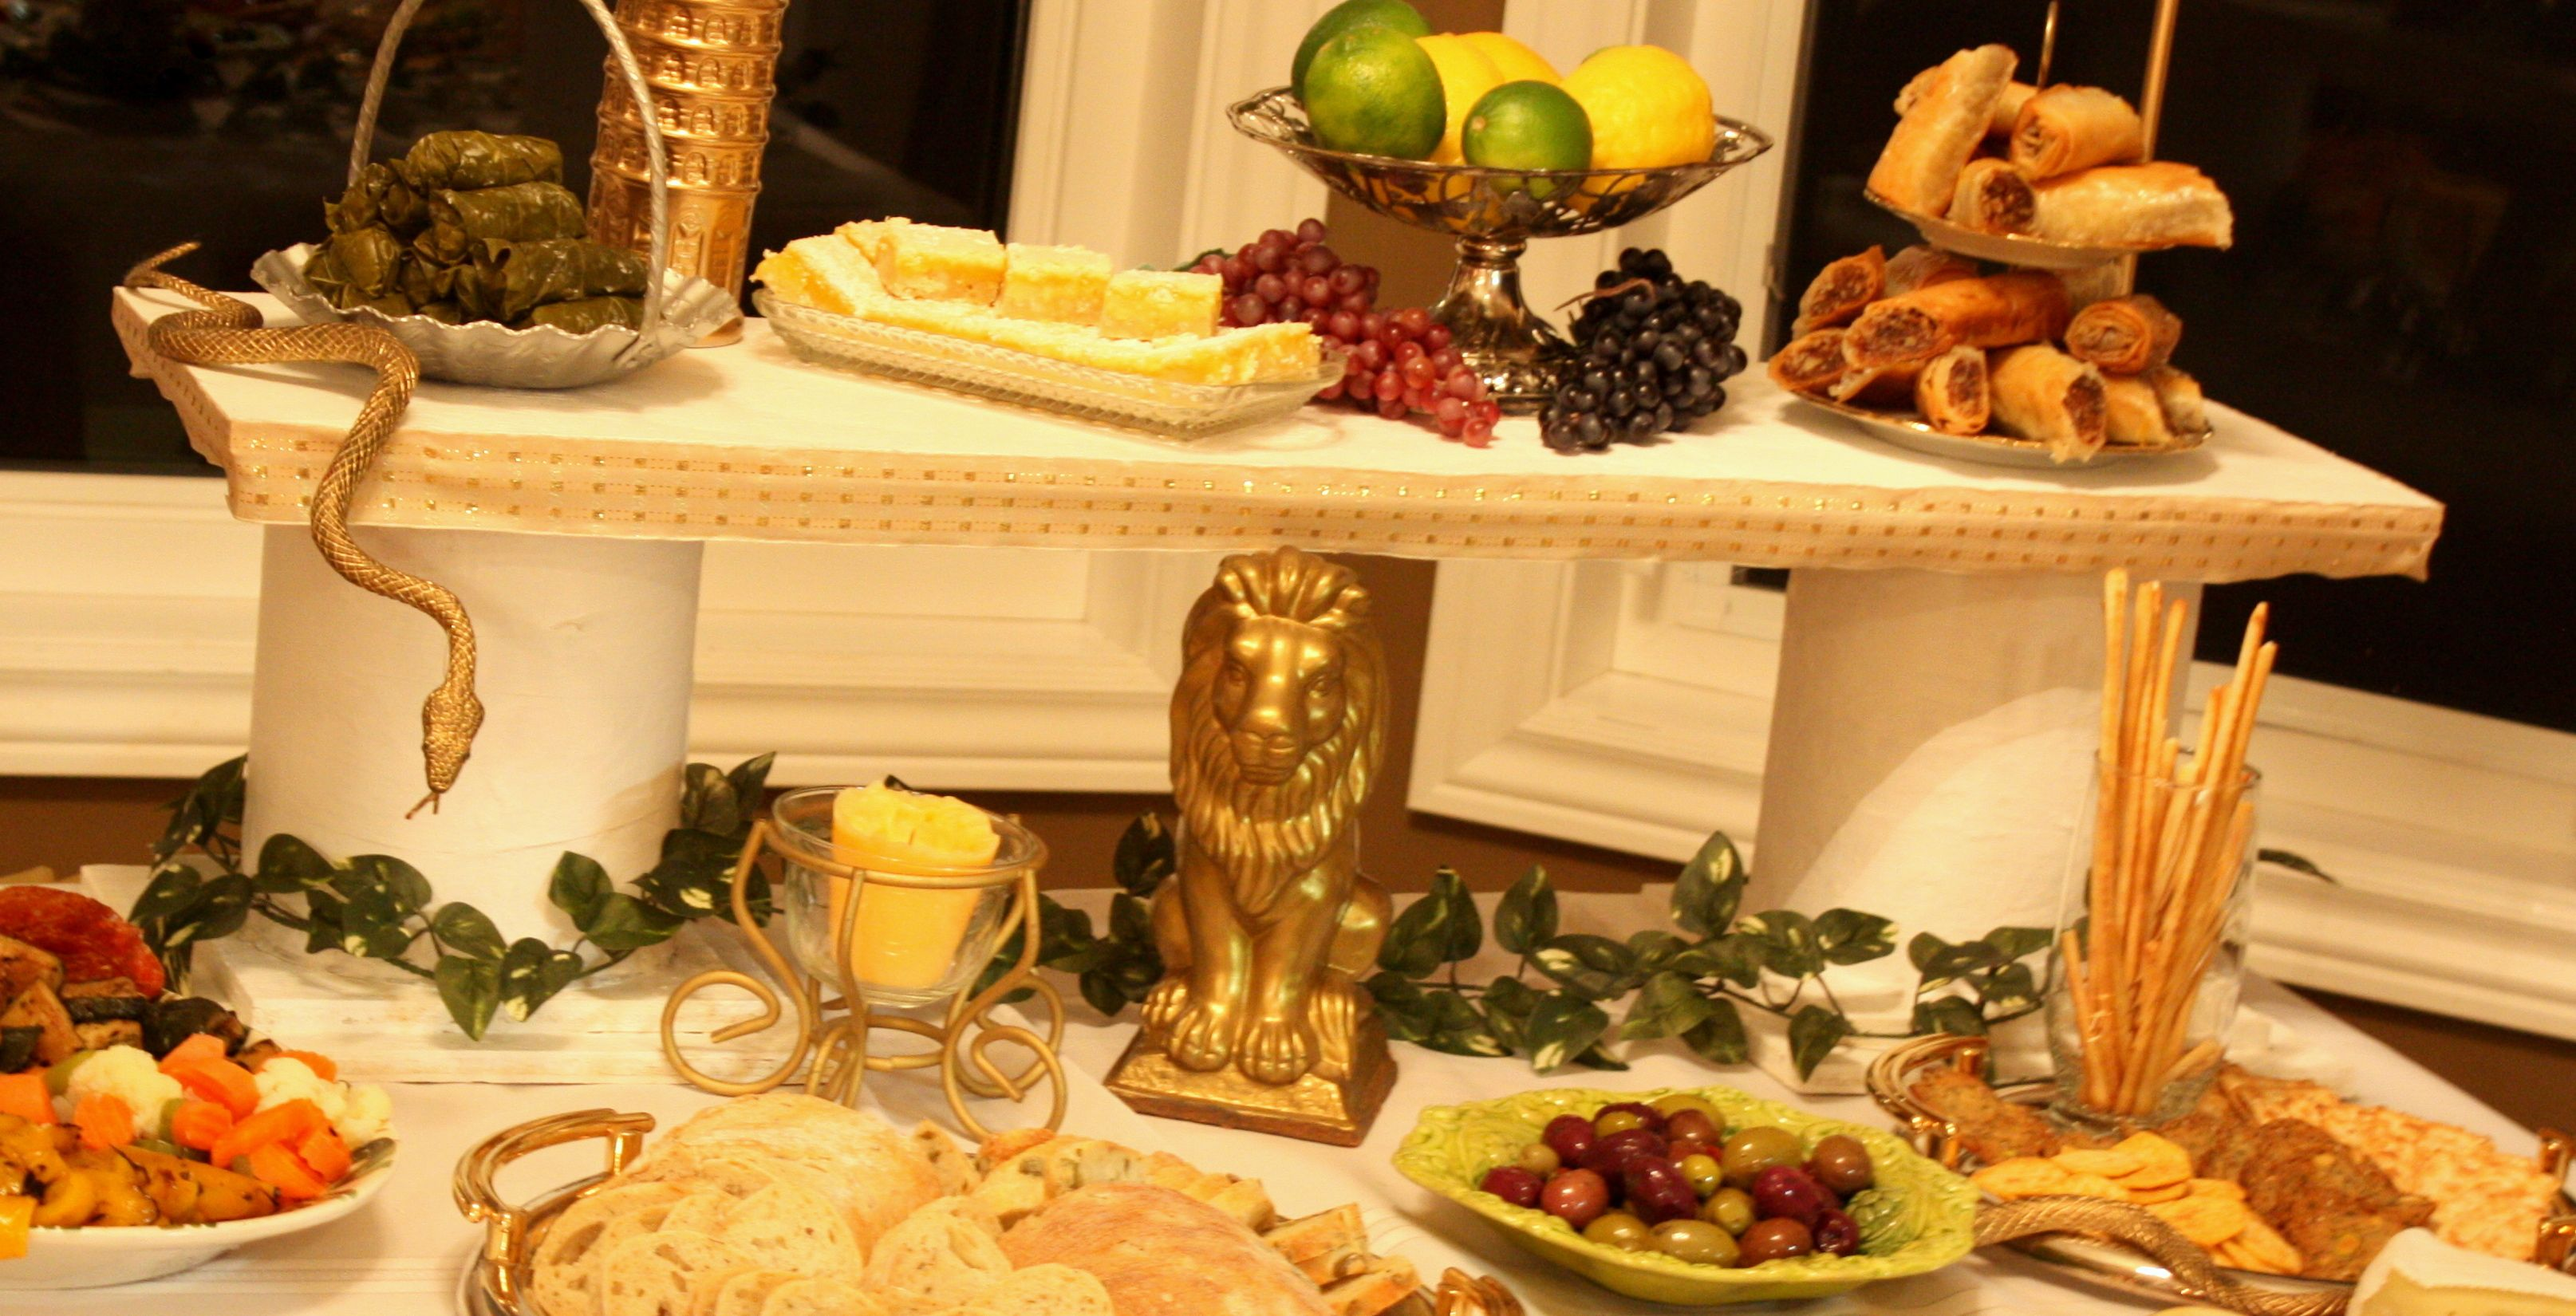 Toga party food table 1 i can make this pinterest for Table decoration ideas for parties